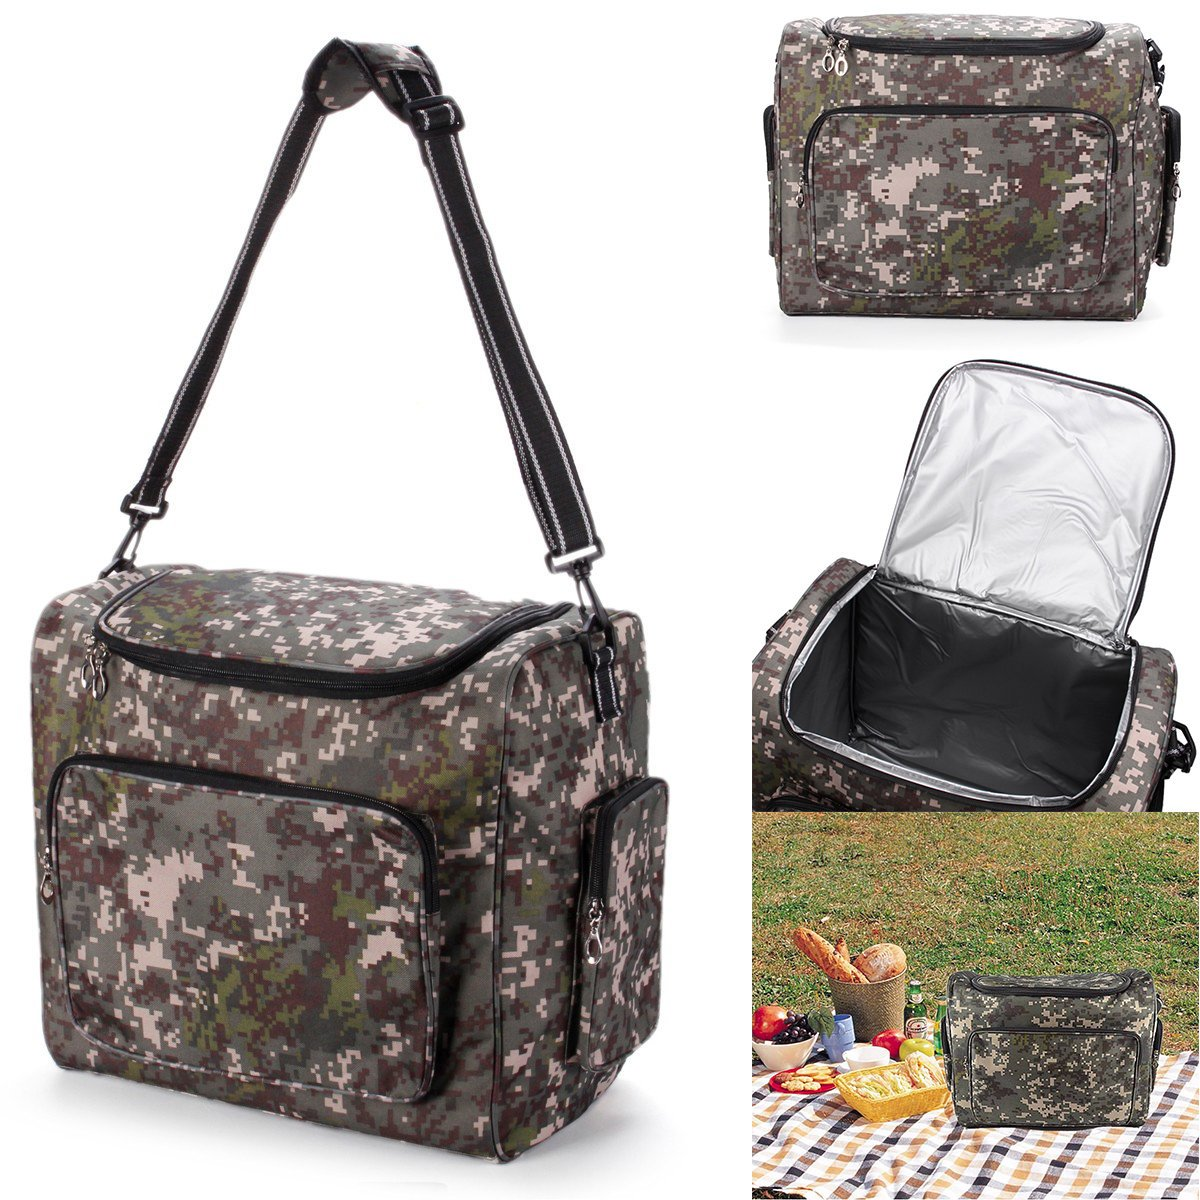 Bazaar Outdoor Insulated Cooler Bag Pack Picnic Food Lunch Storage Box Camping Hiking Travel